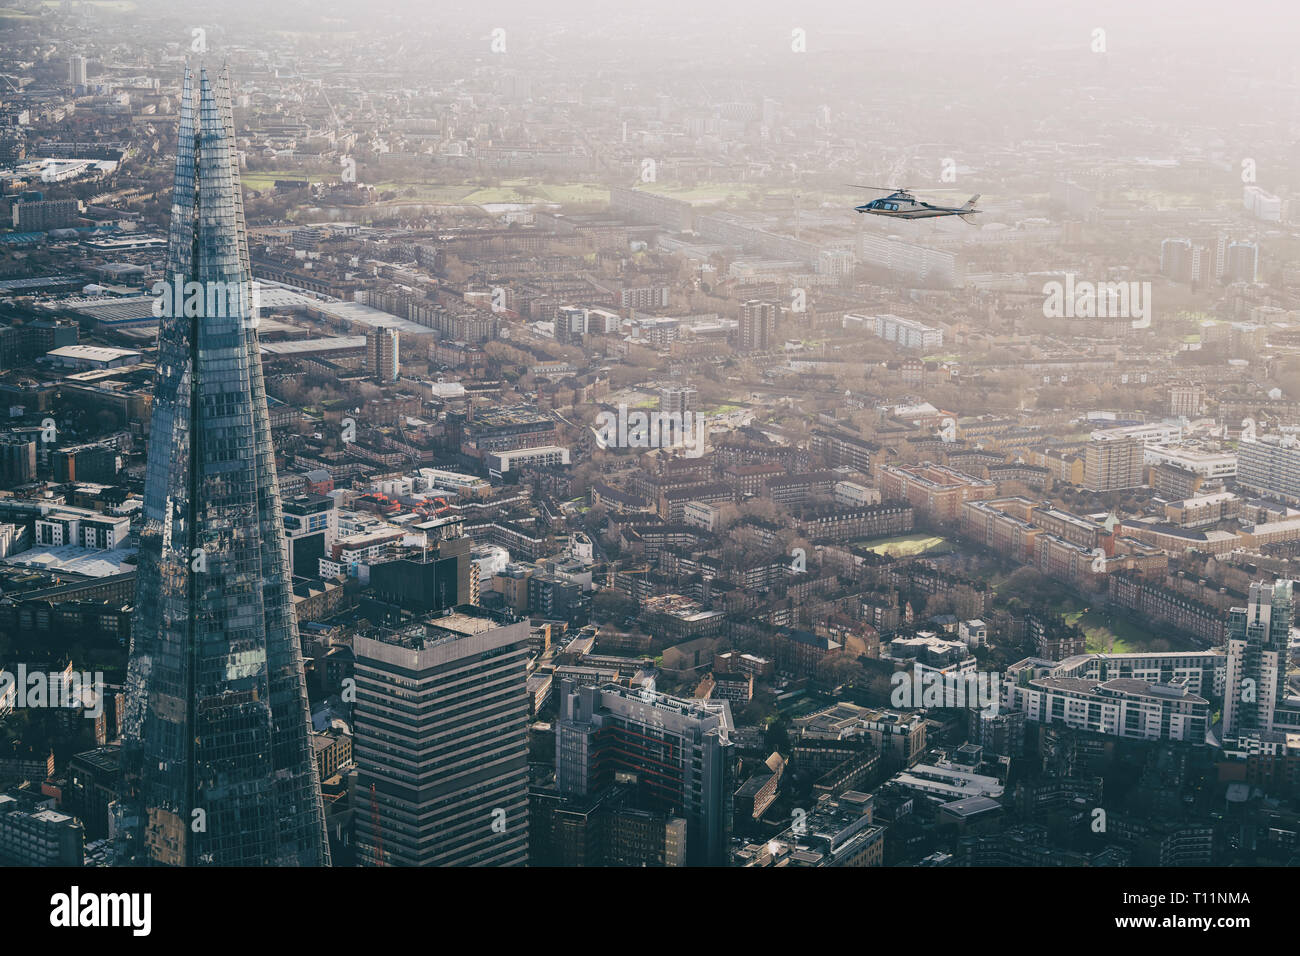 AW109 charter helicopter flying over London during an aerial photoshoot. - Stock Image